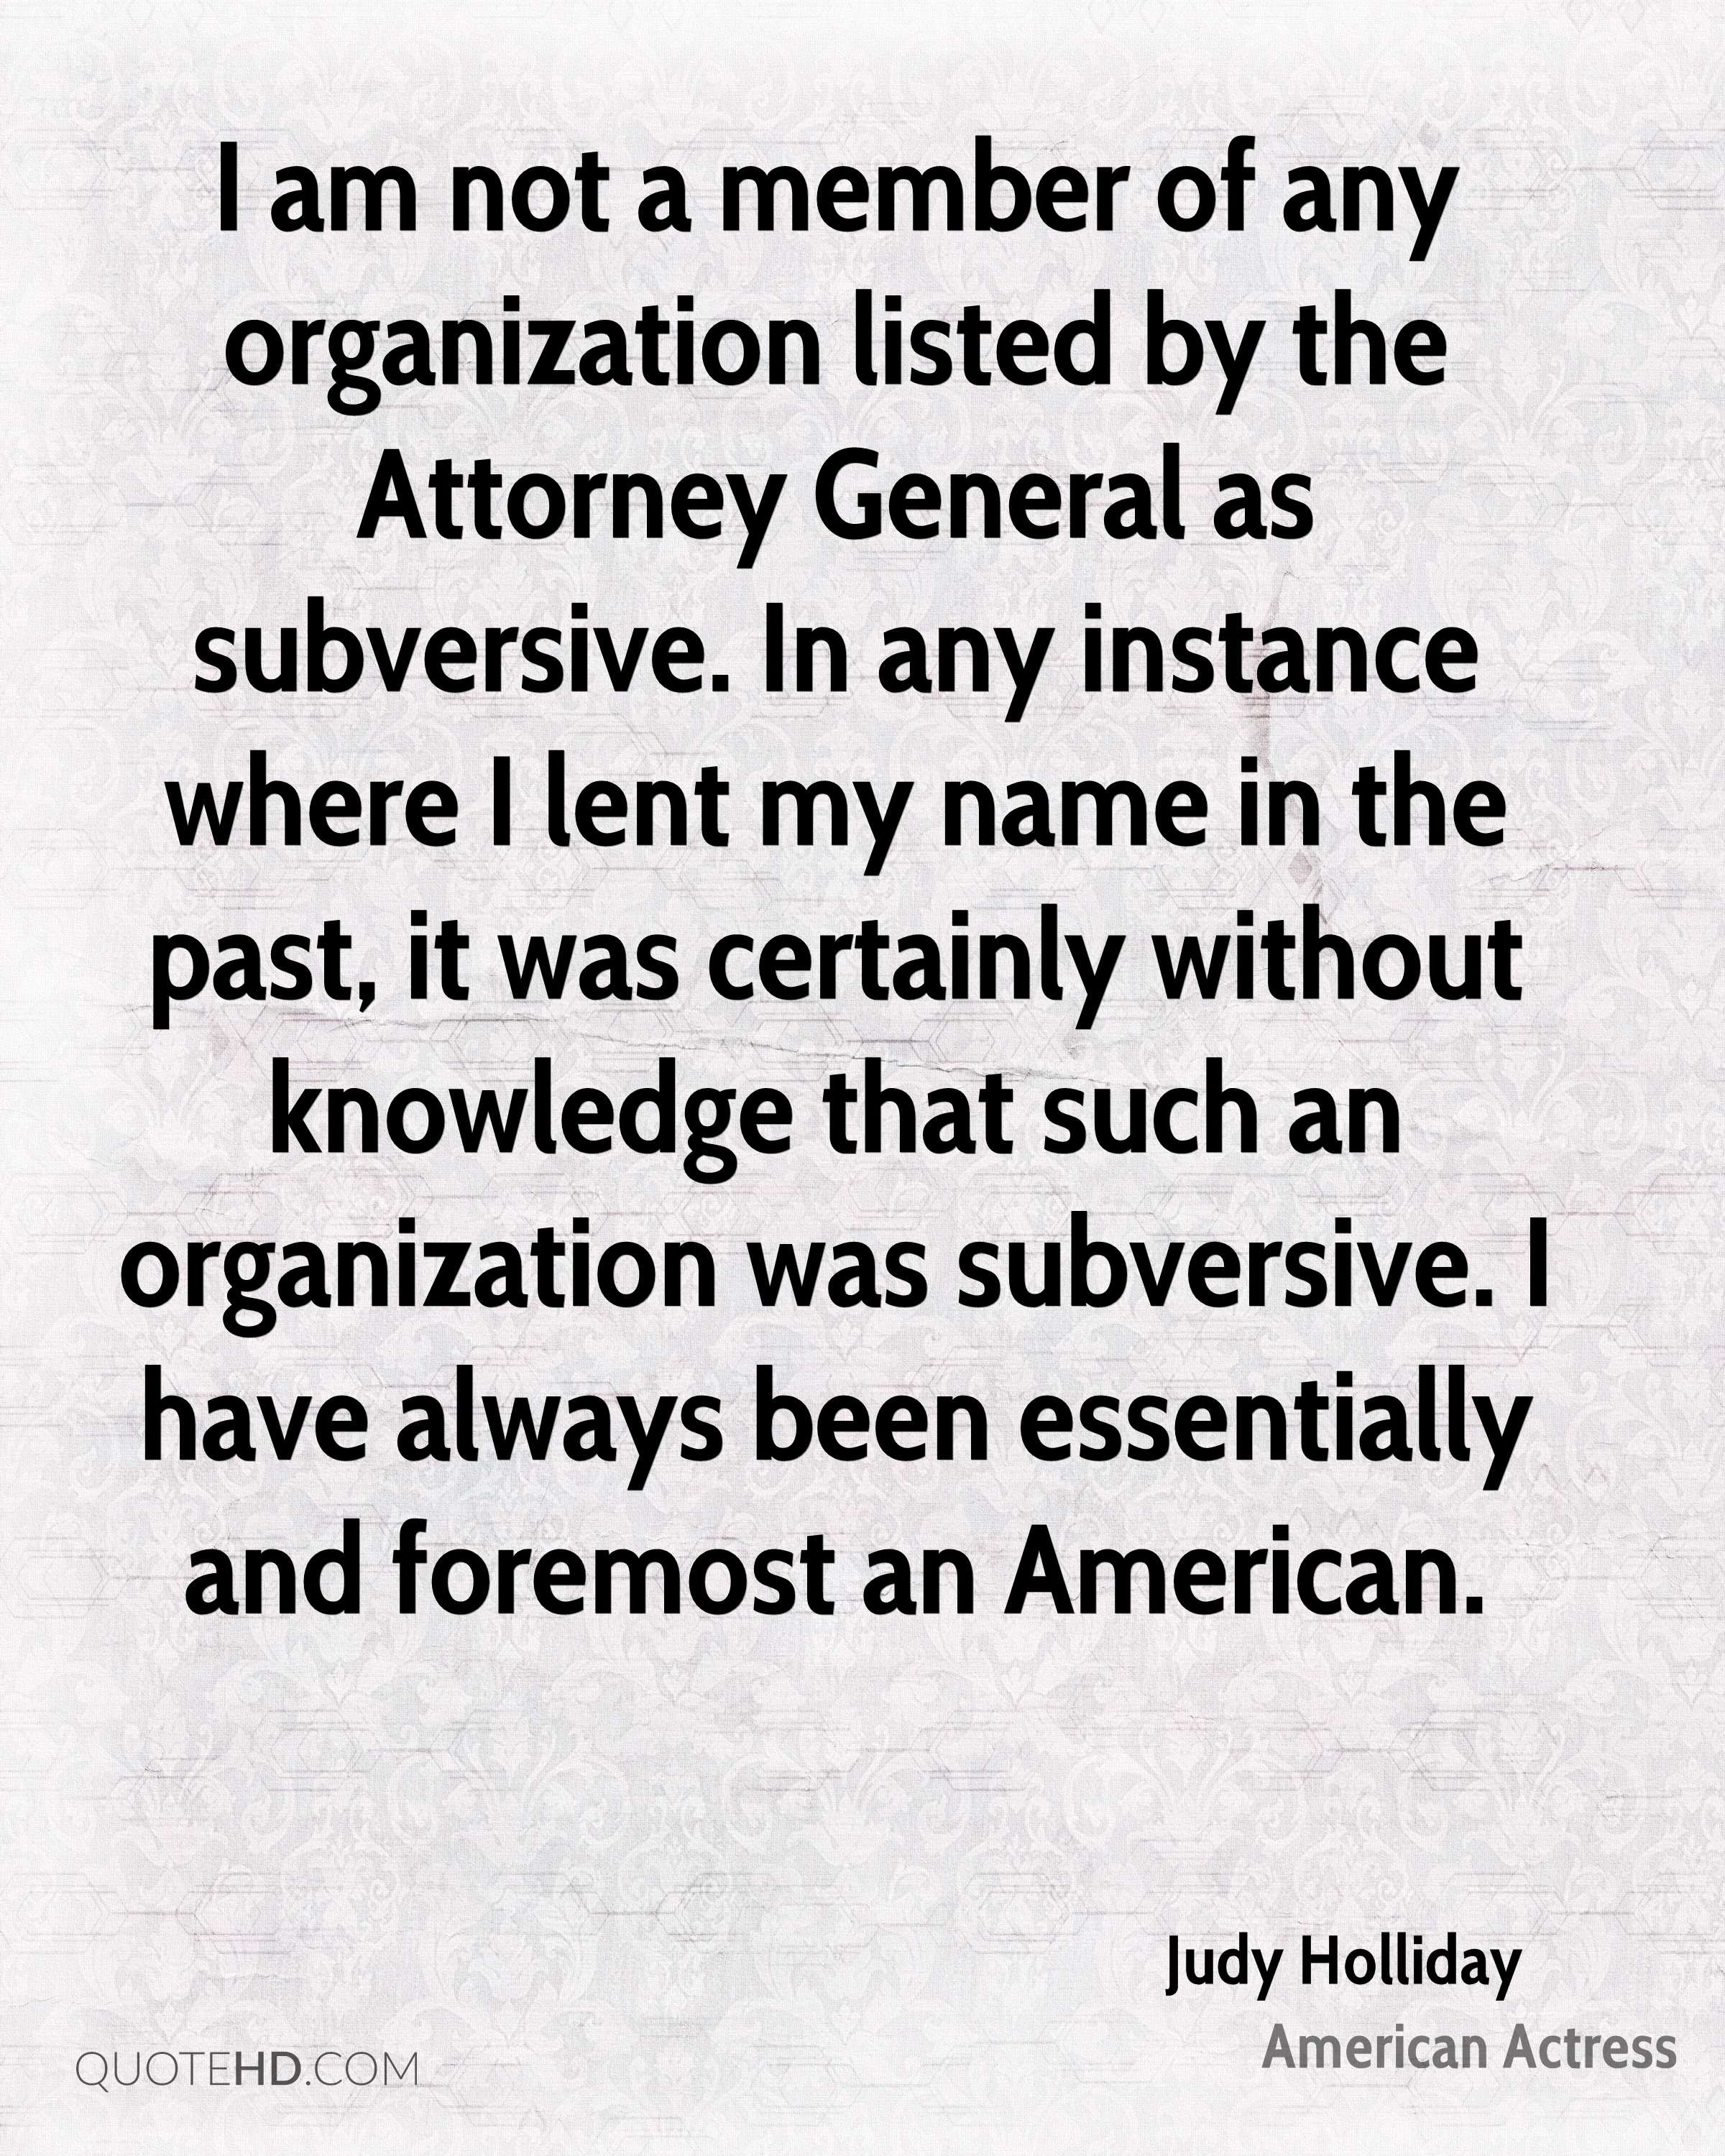 I am not a member of any organization listed by the Attorney General as subversive. In any instance where I lent my name in the past, it was certainly without knowledge that such an organization was subversive. I have always been essentially and foremost an American.